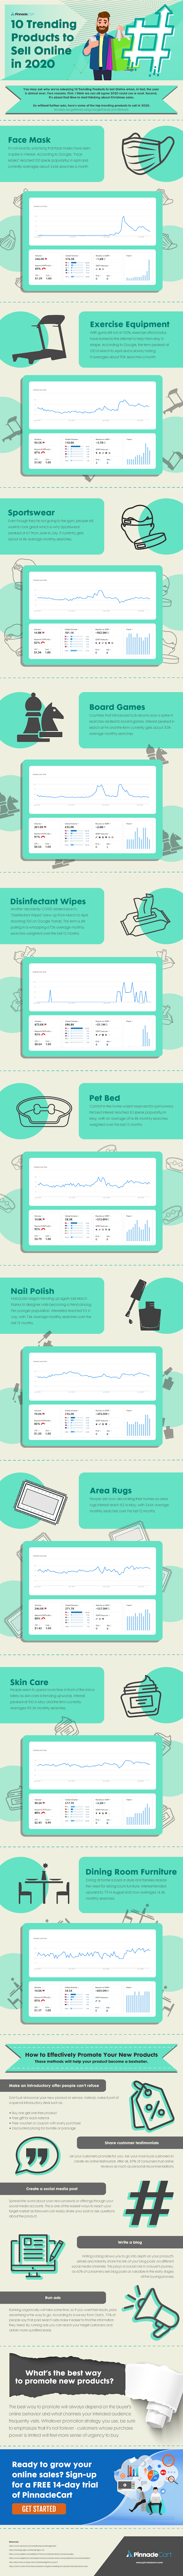 10 Trending Products to Sell Online in 2020 #infographic #Sell #Sell Online #Business